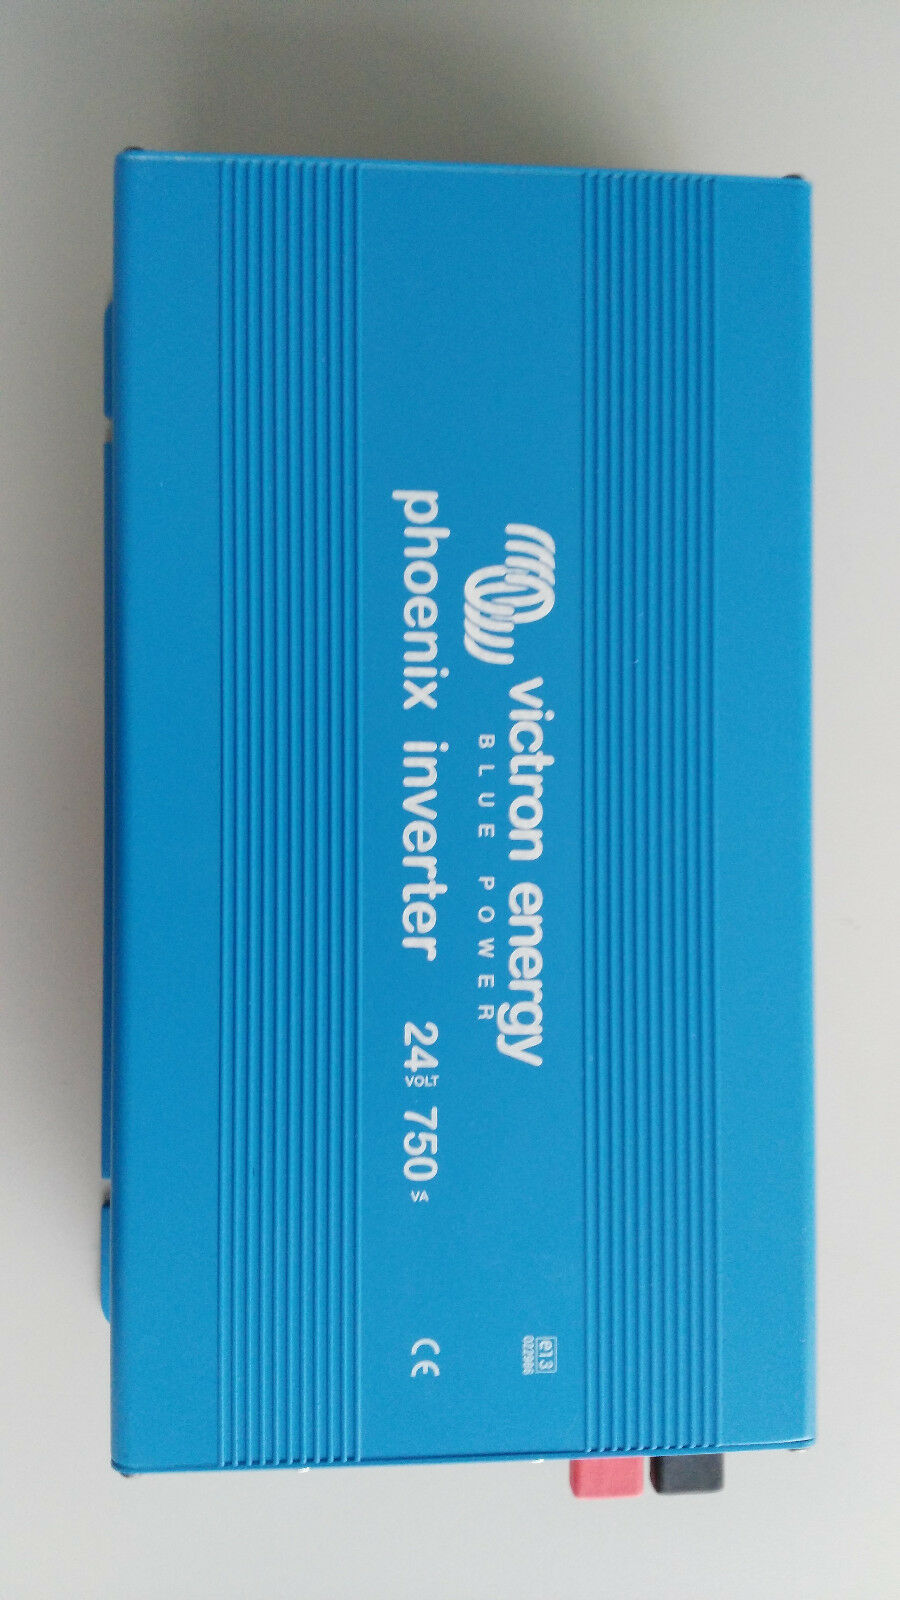 VICTRON ENERGY  azul POWER INverdeER  24 750   (NEW OLD STOCK)